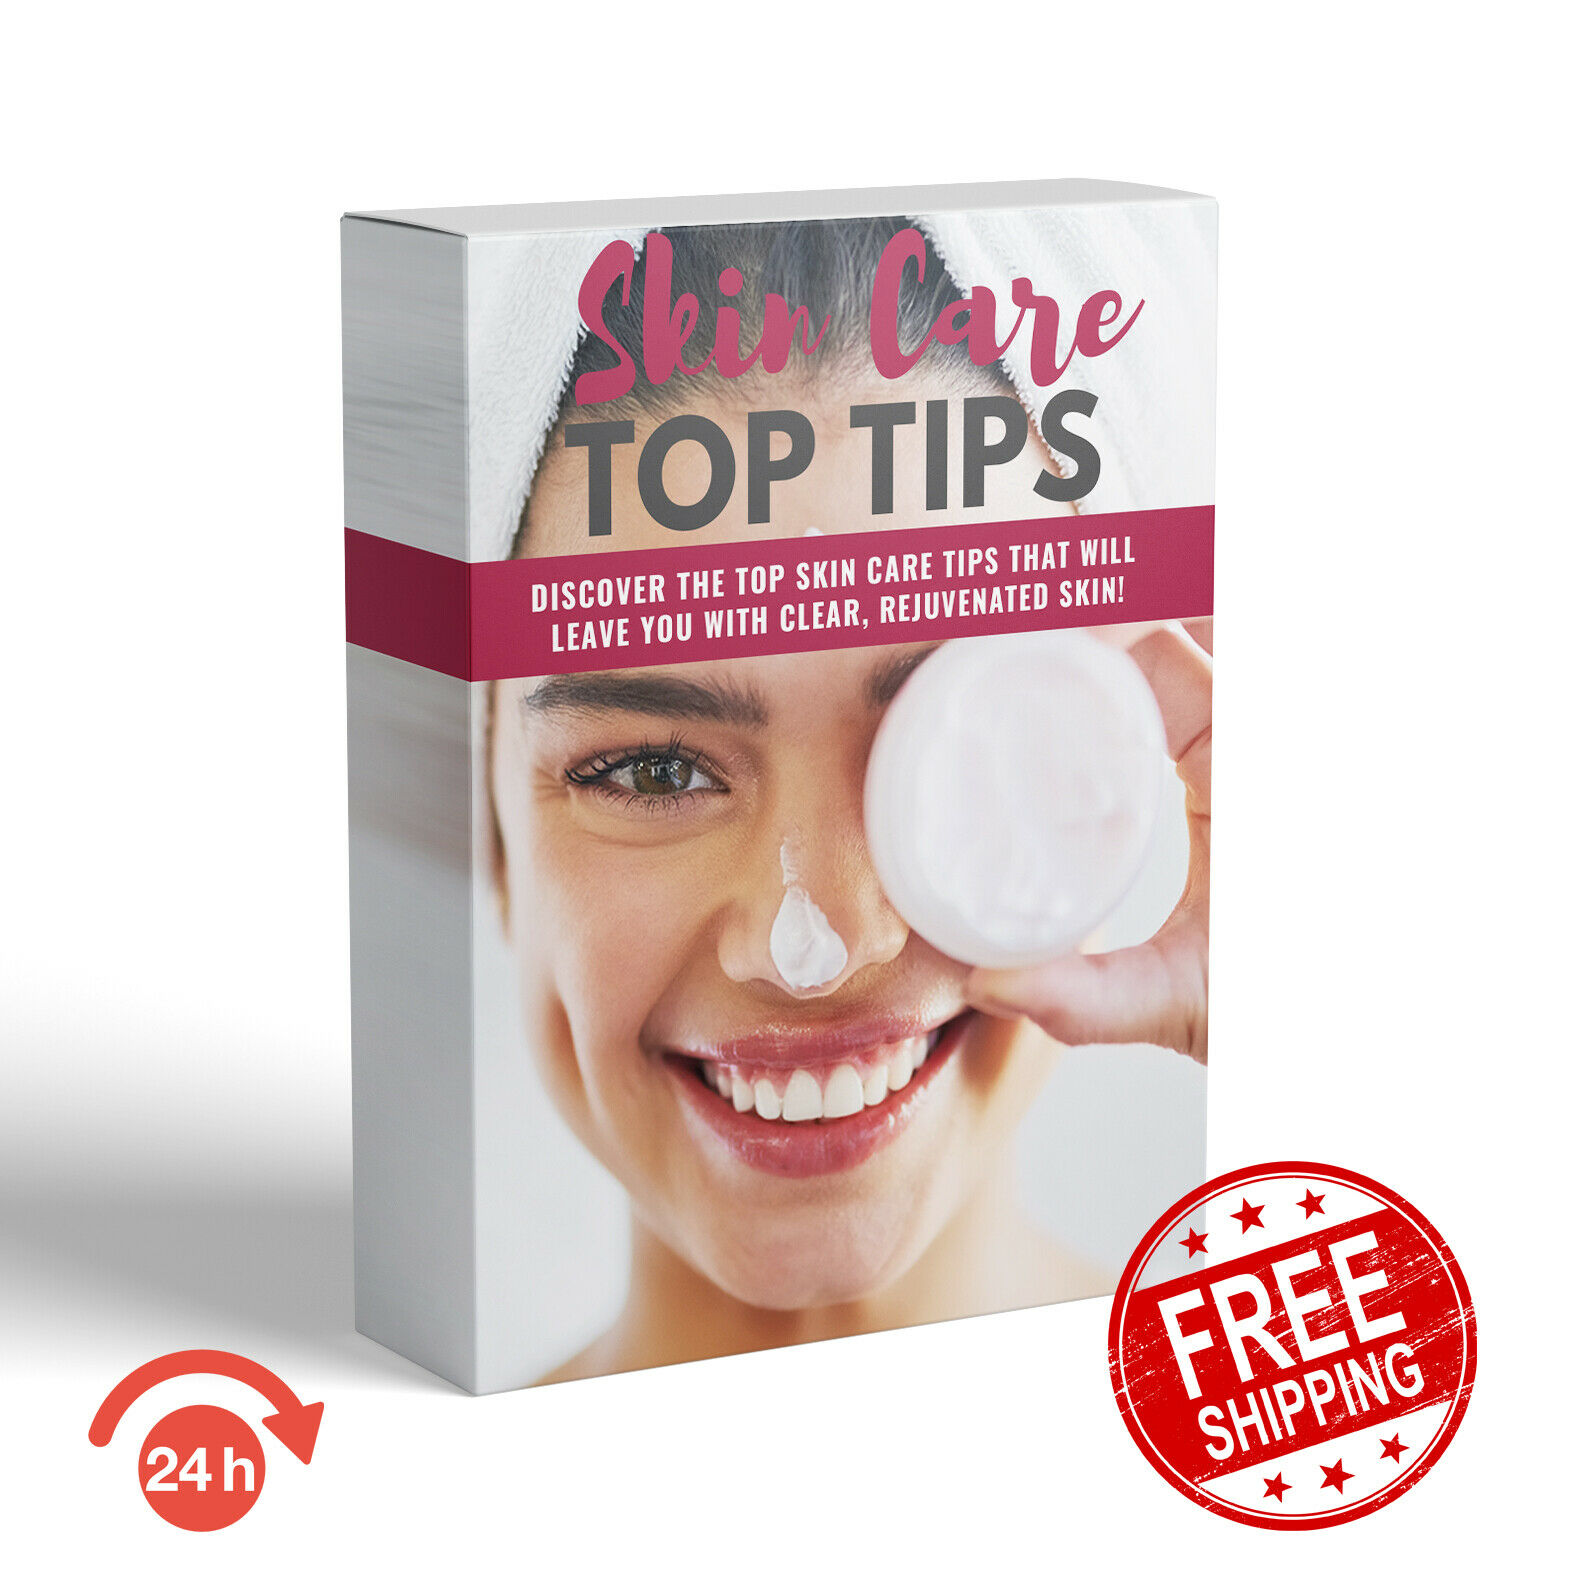 NATURAL SKIN CARE TIPS E BOOK WITH MASTER RESELL RIGHTS + FREE SHIPPING 1